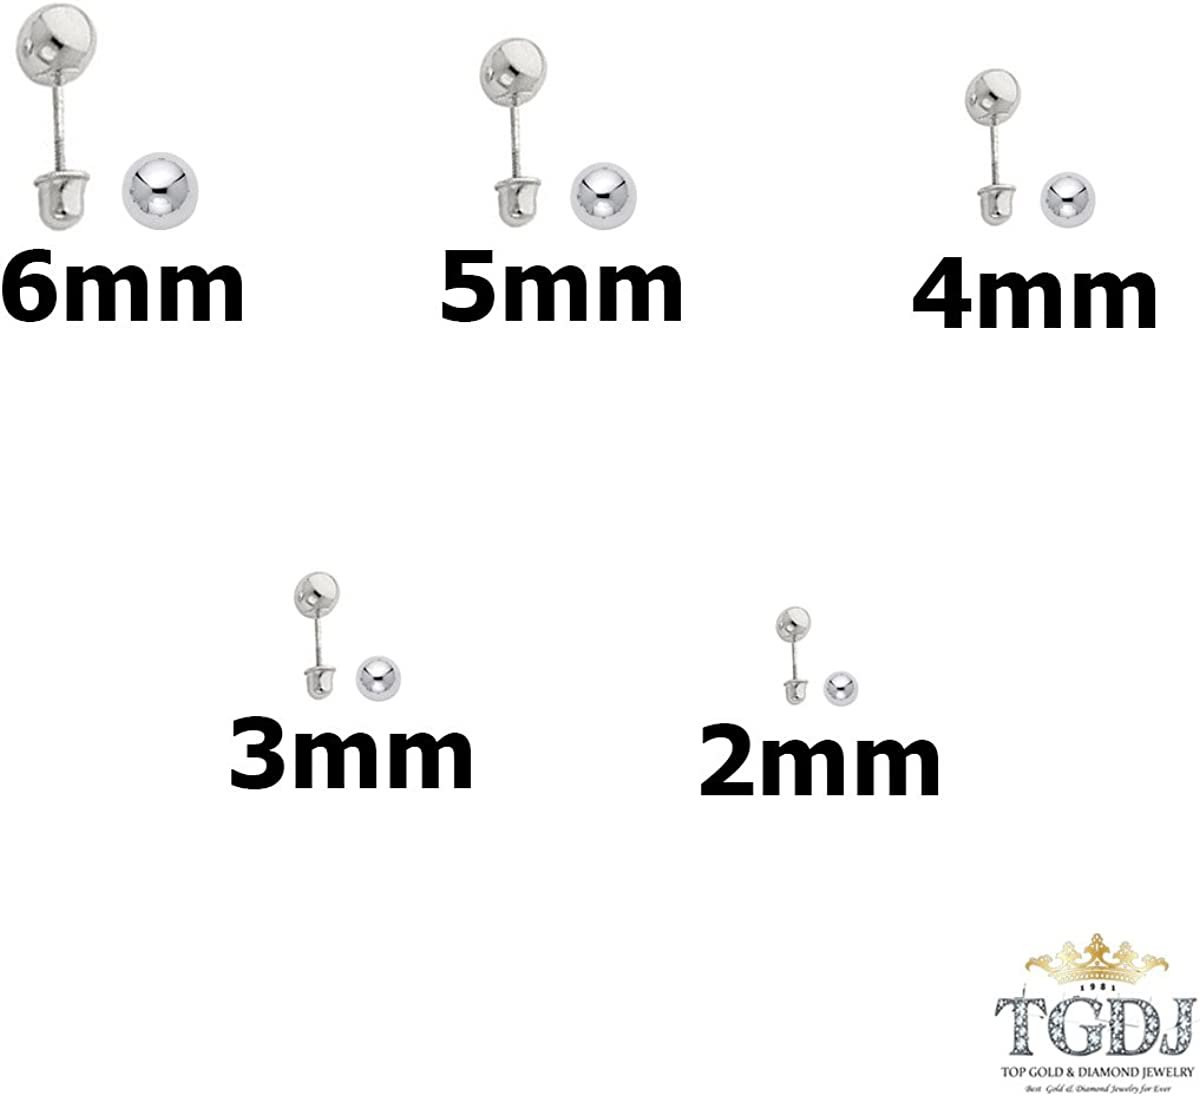 Simple Dainty 14K White Gold Hollow Ball Safety Screw Back Earrings Sizes 2mm 6mm